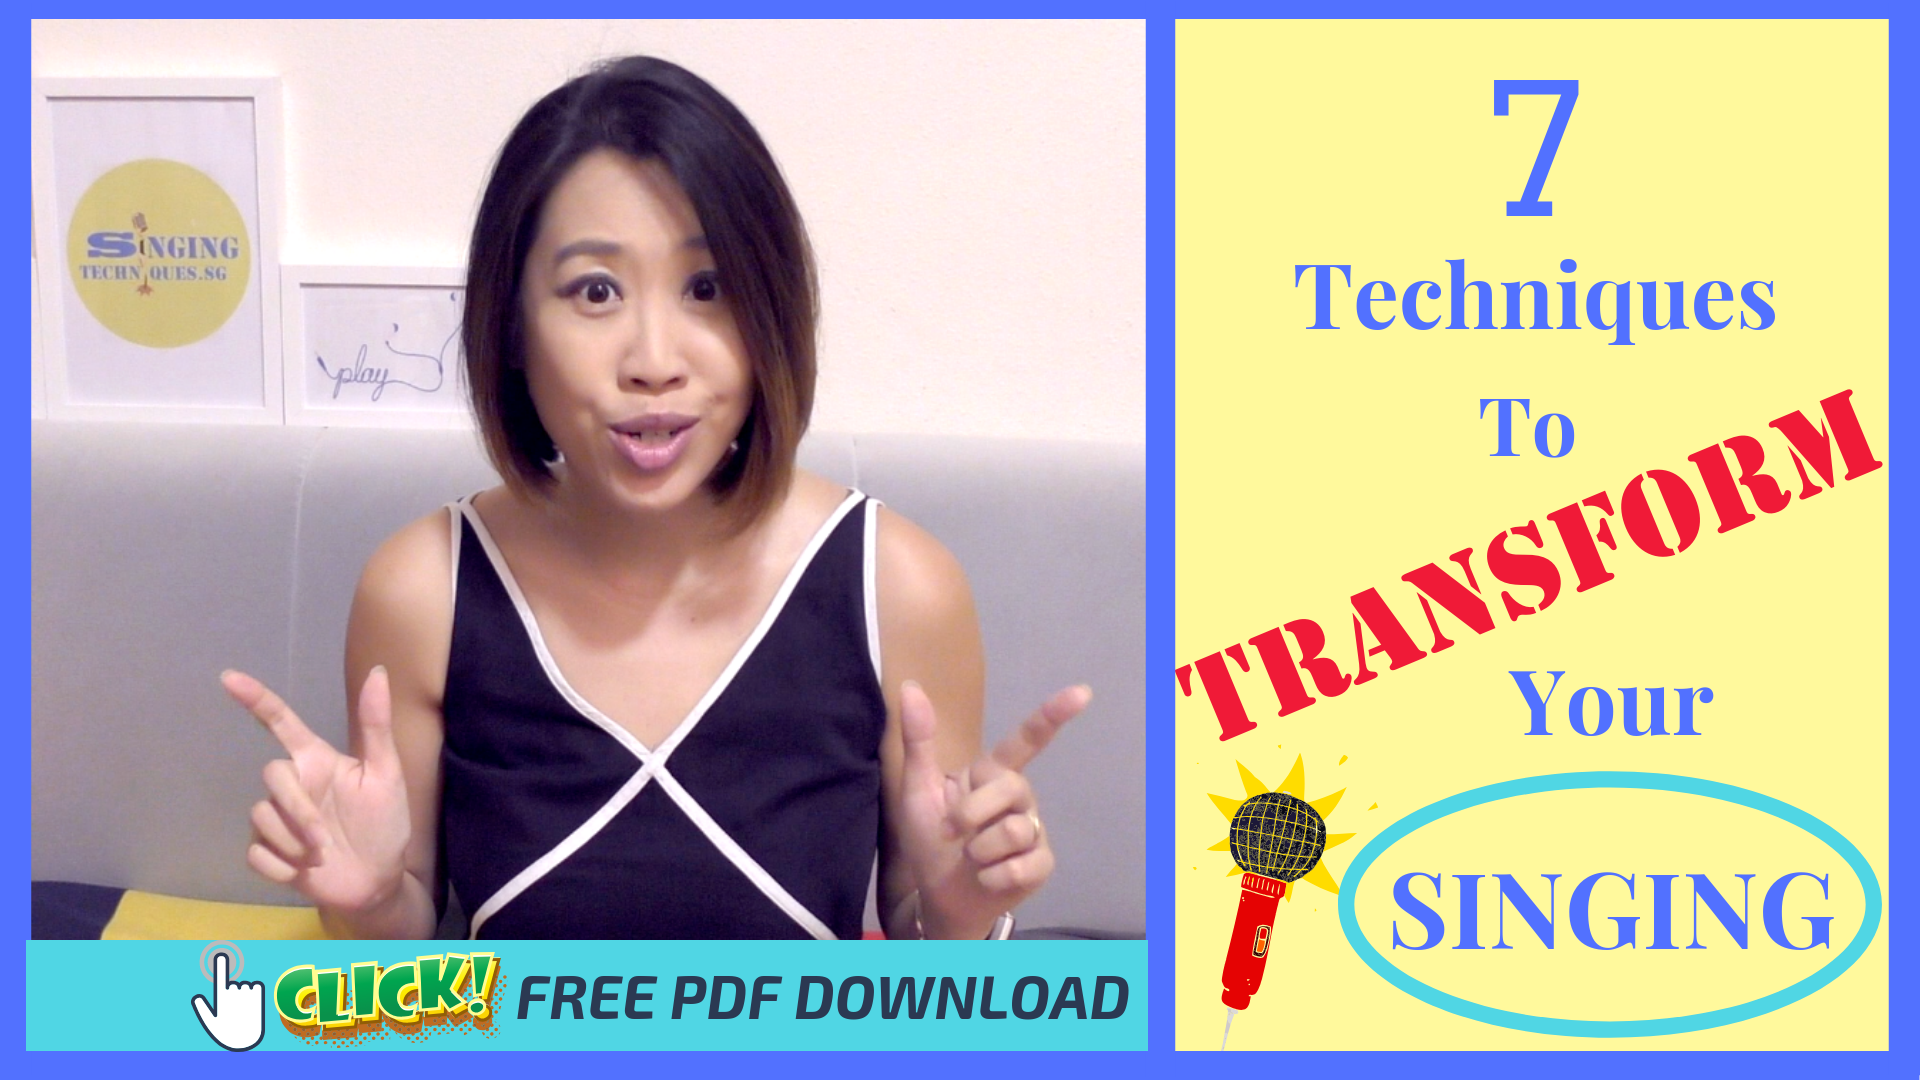 7 Techniques to Transform Your Singing